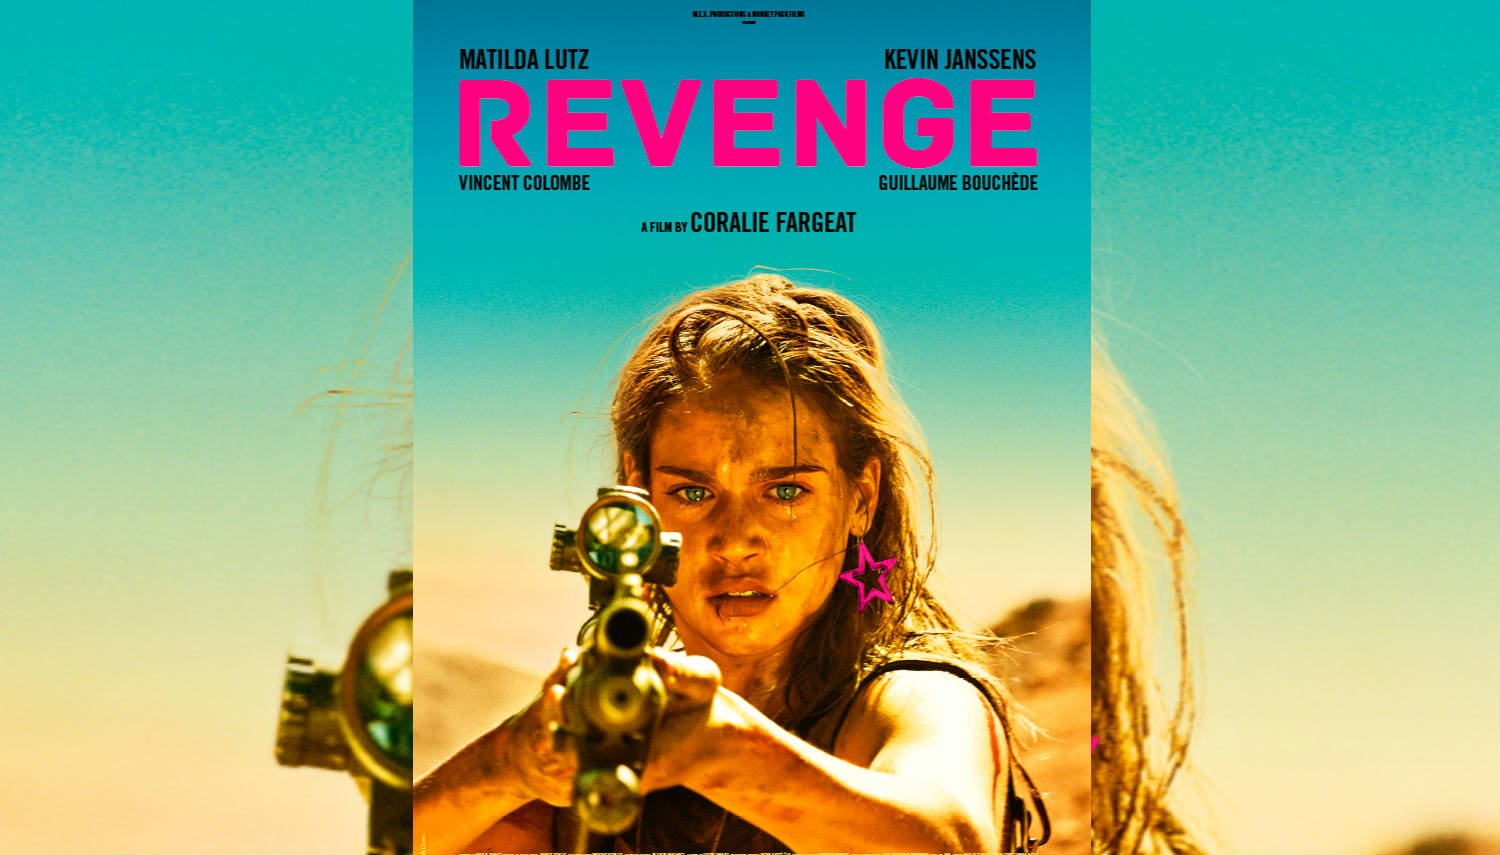 Revenge Review – A Blood Soaked Killer - OC Movie Reviews - Movie Reviews, Movie News, Documentary Reviews, Short Films, Short Film Reviews, Trailers, Movie Trailers, Interviews, film reviews, film news, hollywood, indie films, documentaries